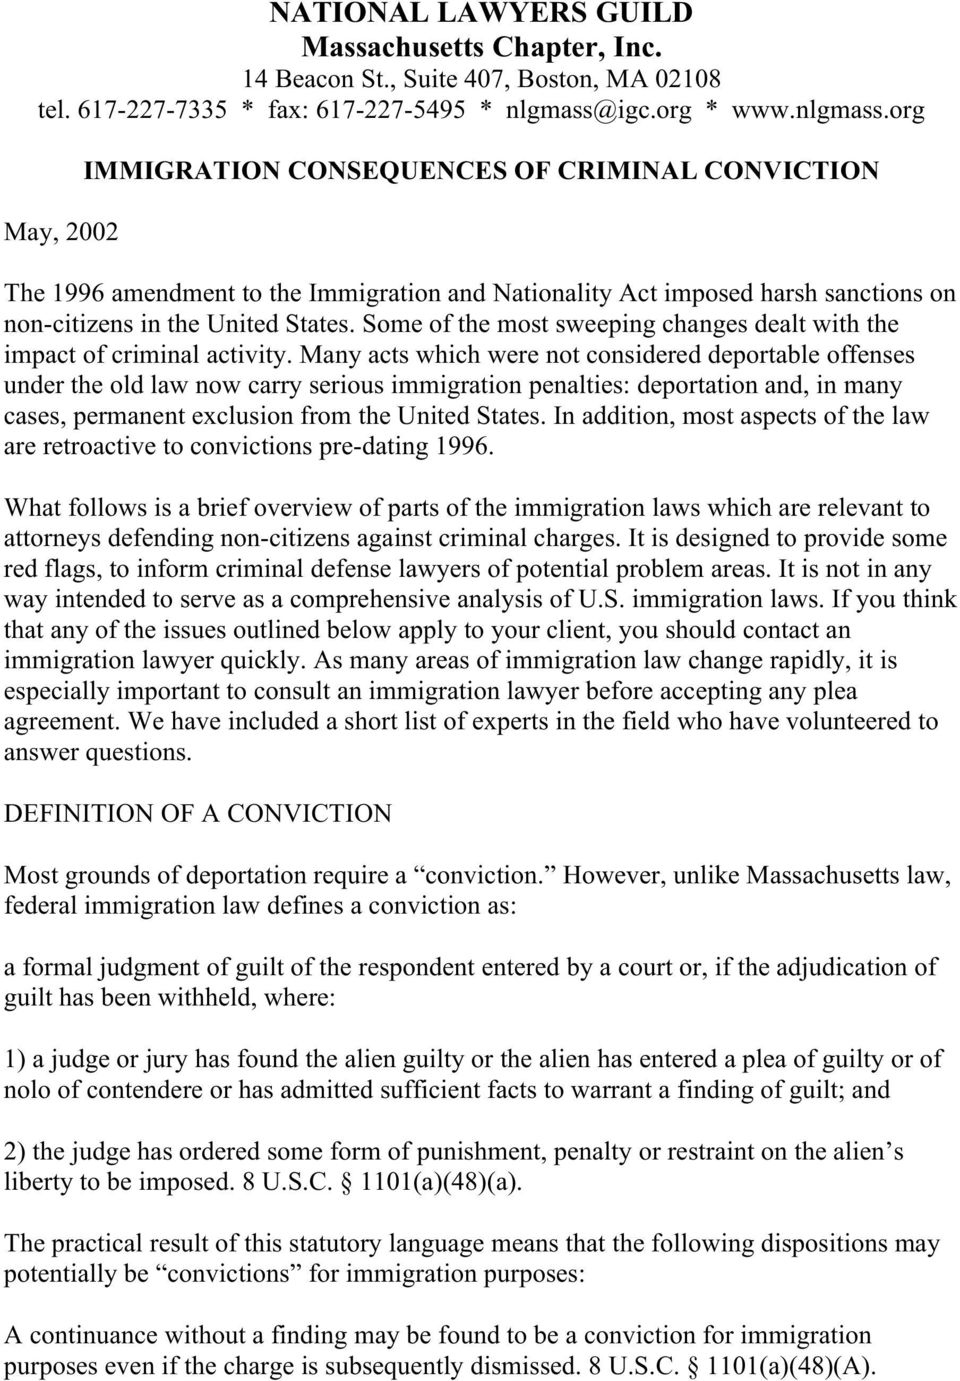 org May, 2002 IMMIGRATION CONSEQUENCES OF CRIMINAL CONVICTION The 1996 amendment to the Immigration and Nationality Act imposed harsh sanctions on non-citizens in the United States.